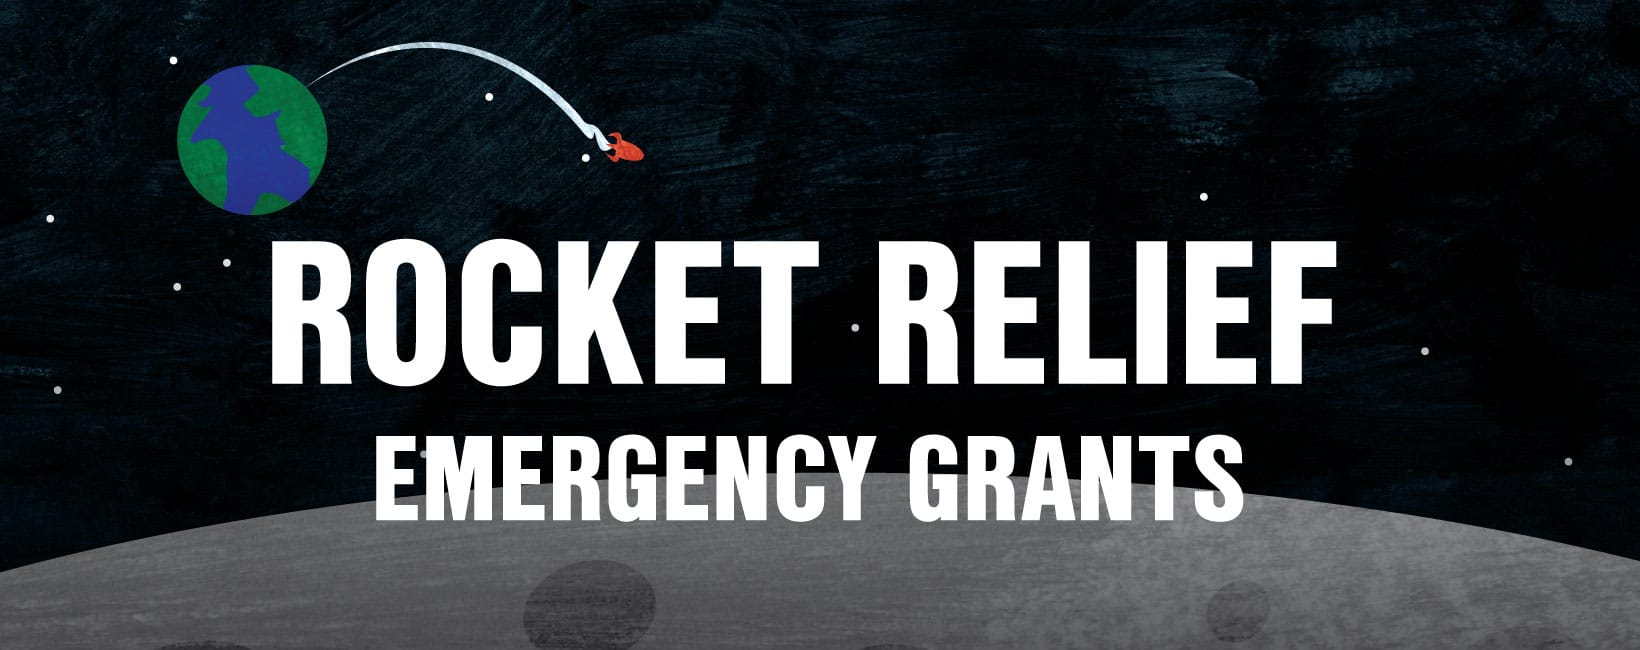 Rocket Relief logo